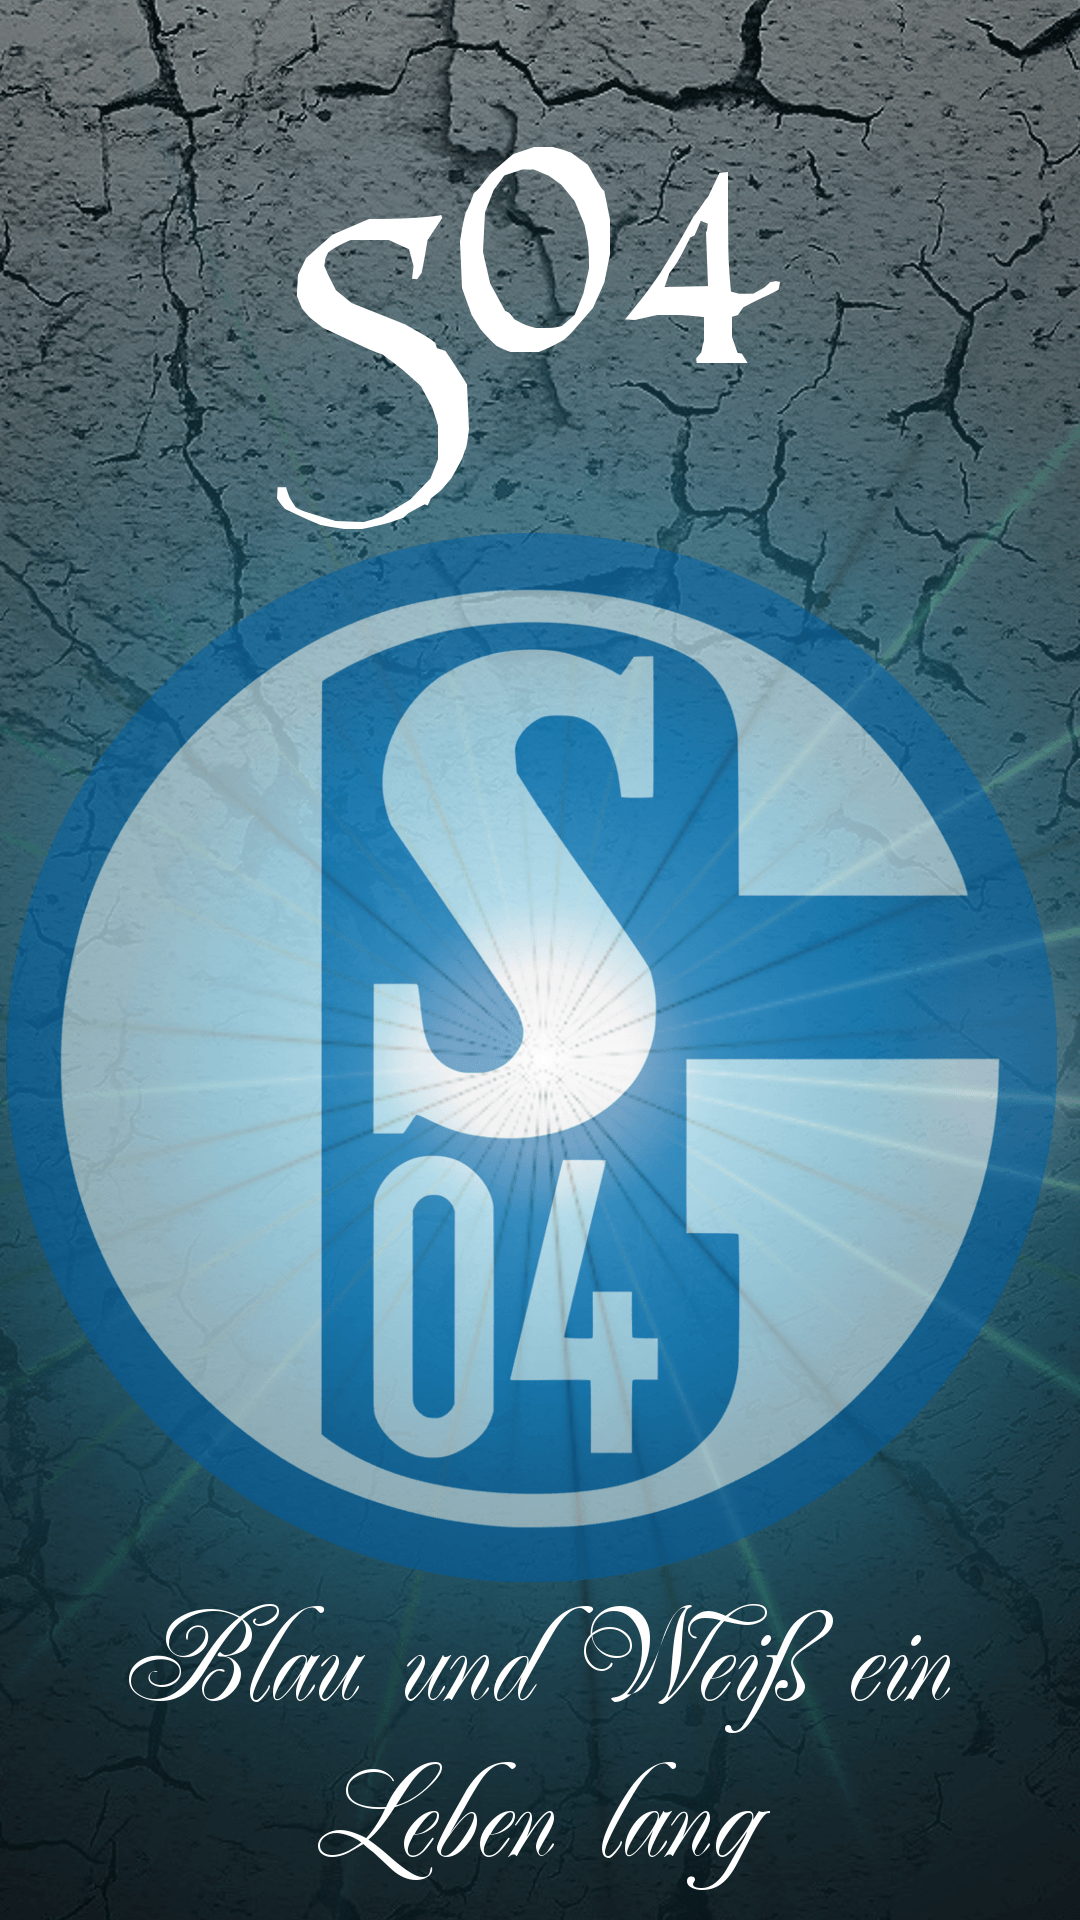 Fc Schalke 04 Wallpapers Wallpaper Cave